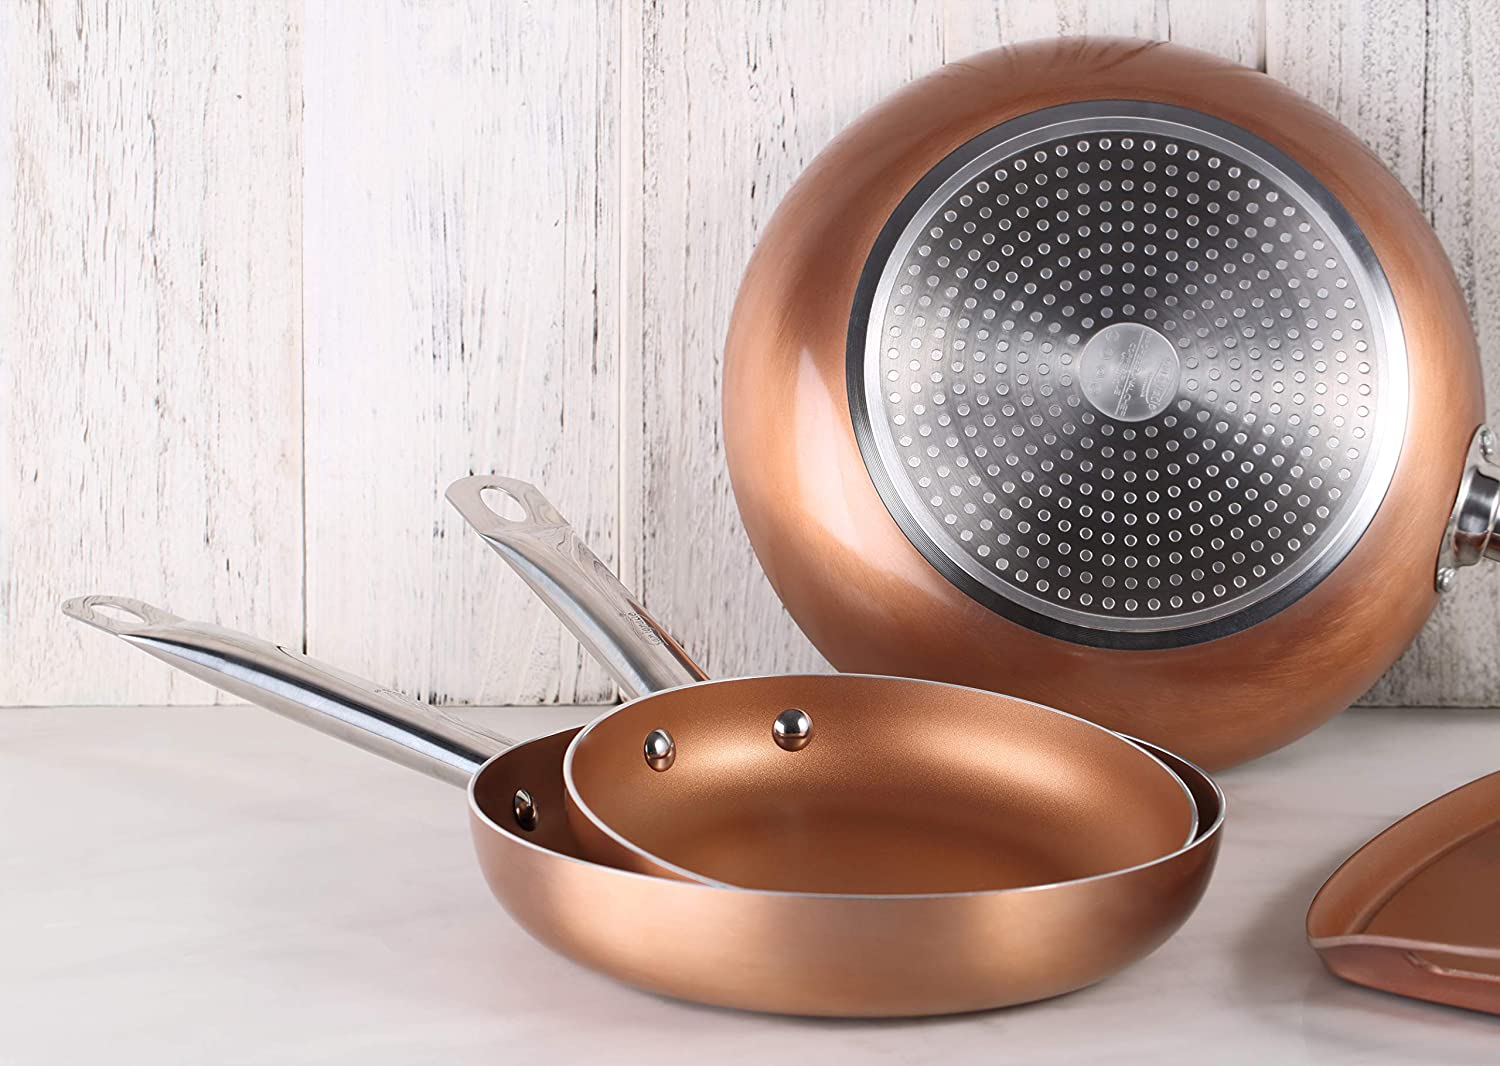 Amazon.com: San Ignacio PK1409 Professional Chef Copper Plus ...